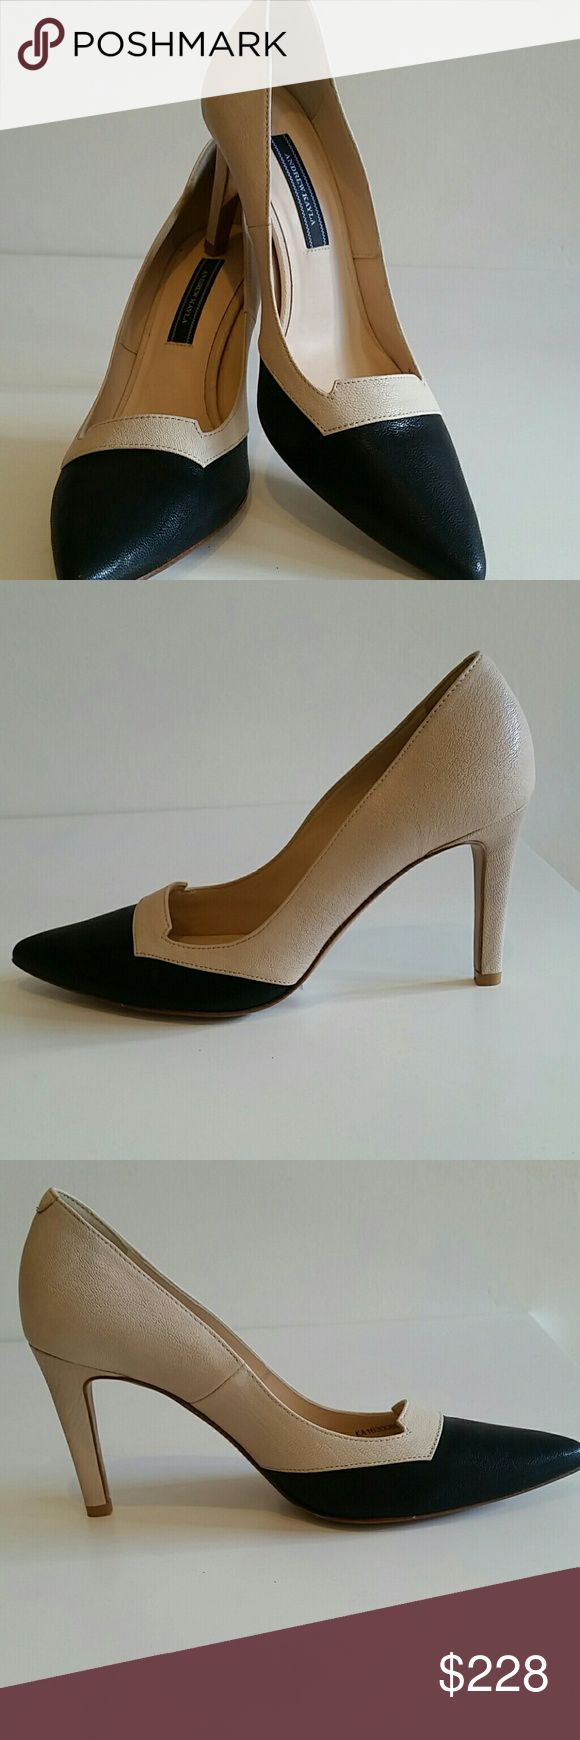 Andrew Kayla shoe Goatskin in black/natural pointed toe pump Andrew Kayla Shoes Heels